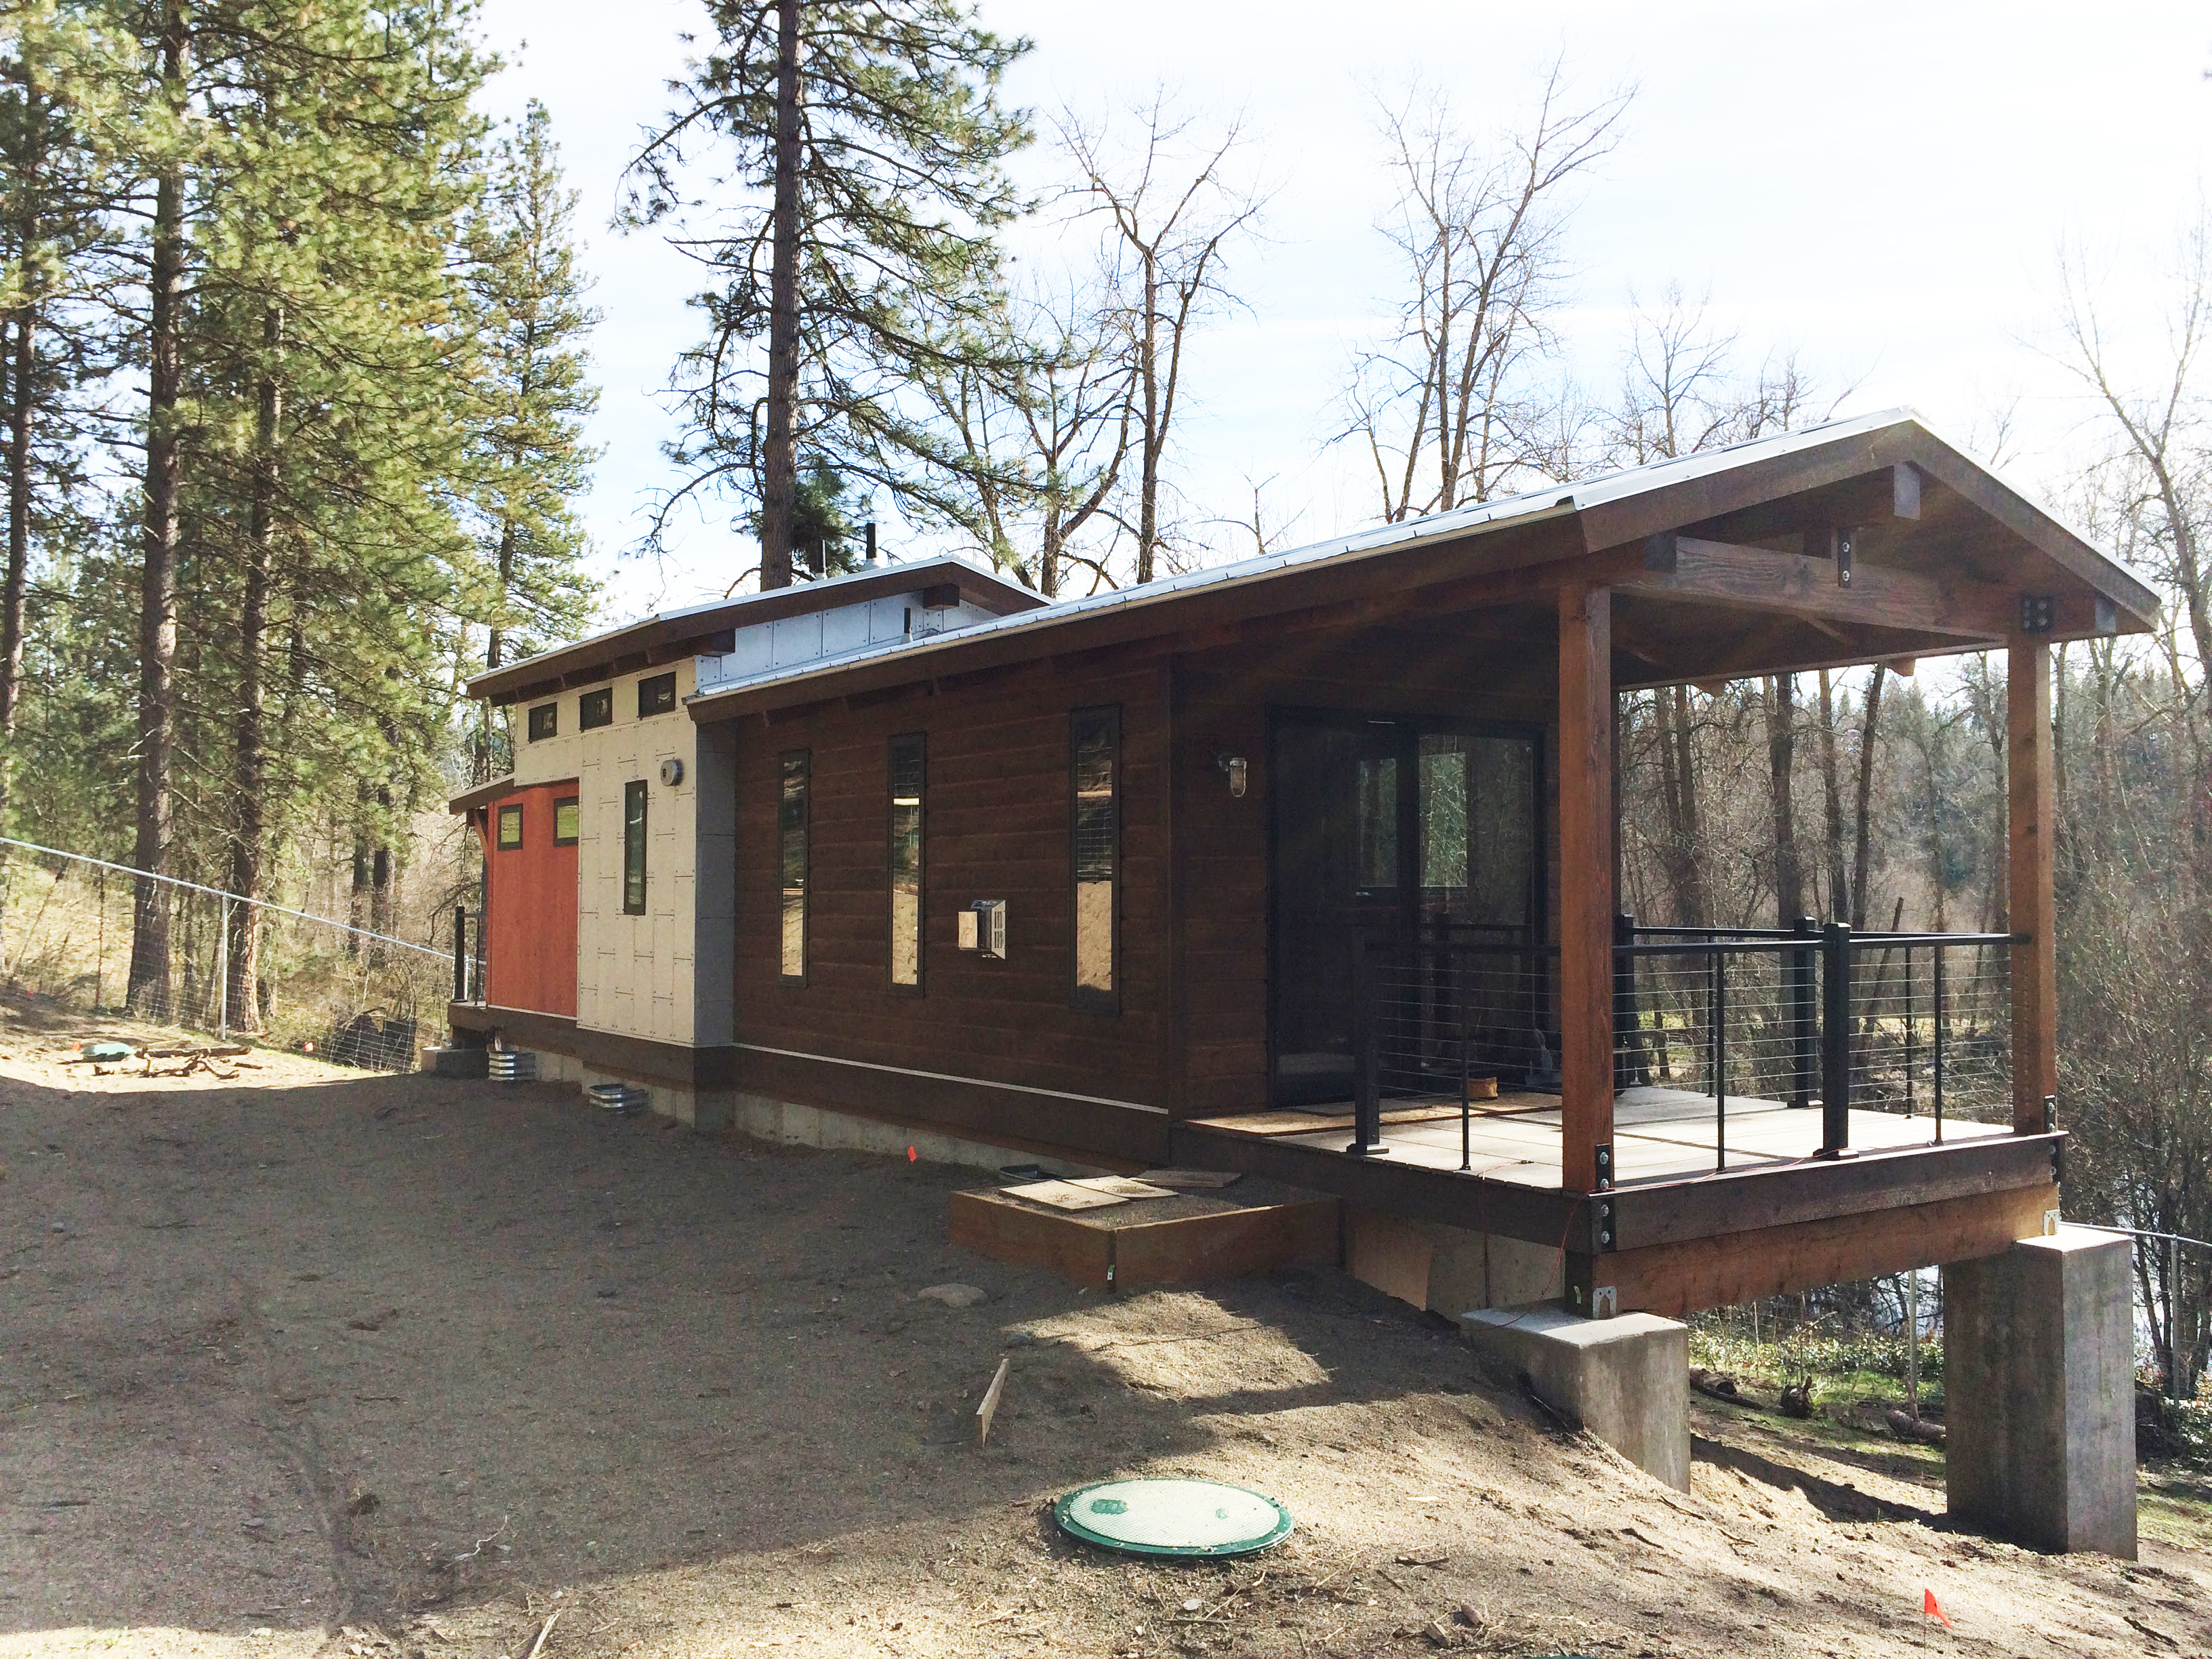 Caboose Park Model Trailer | Wheelhaus - Luxury Rolling Cabins on caboose construction plans, caboose interior plans, caboose shed plans, caboose diy plans, caboose cabin plans, caboose home plans, bobber caboose model plans,